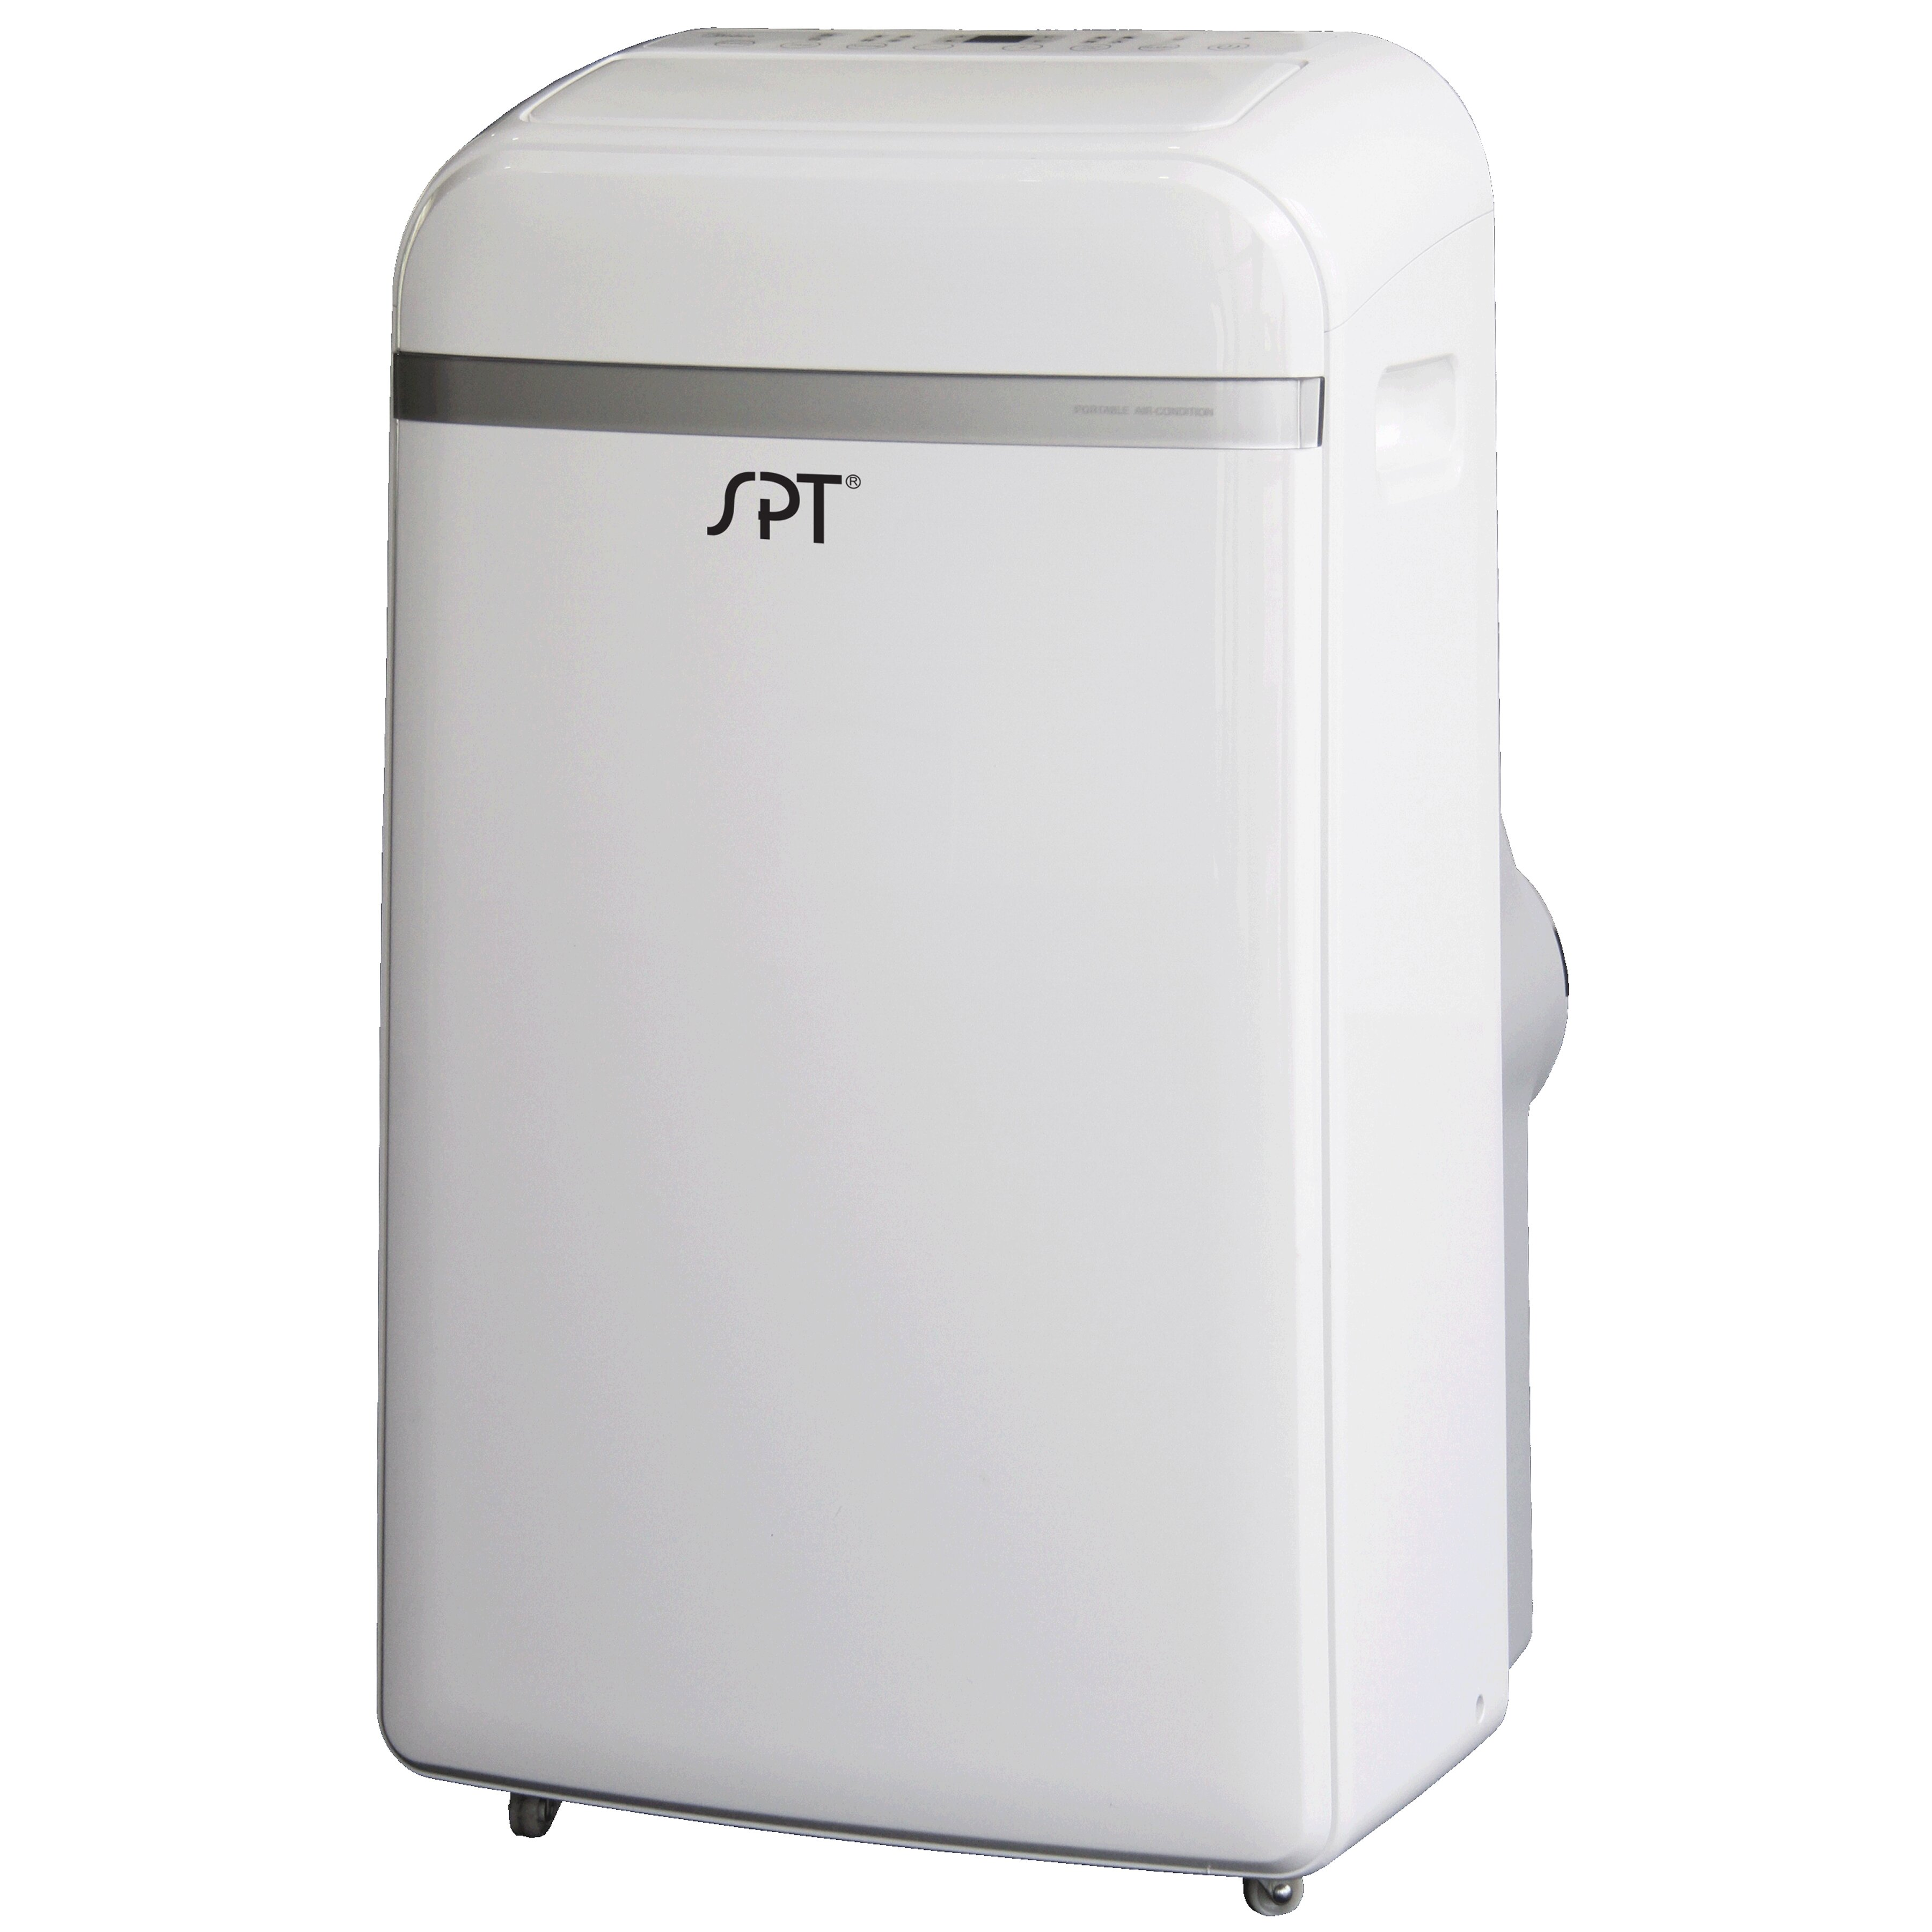 Sunpentown 12 000 BTU Portable Air Conditioner with Heater & Reviews  #51515A